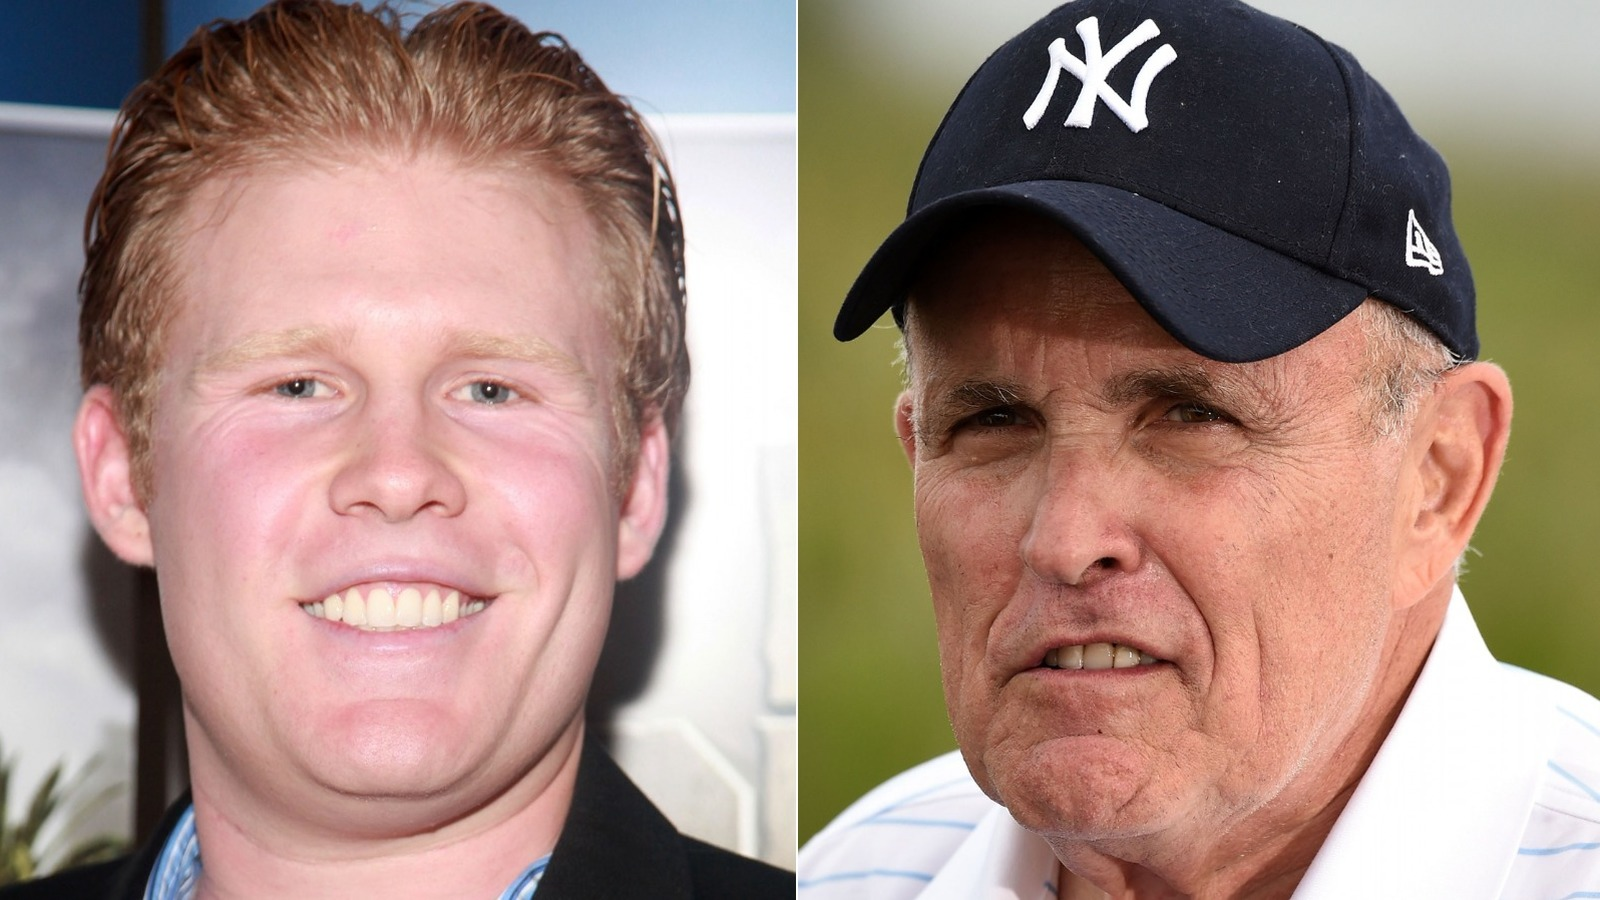 The Unsaid truth of Rudy Guiliani's son's Andrew Giuliani, COVID-19 diagnosis